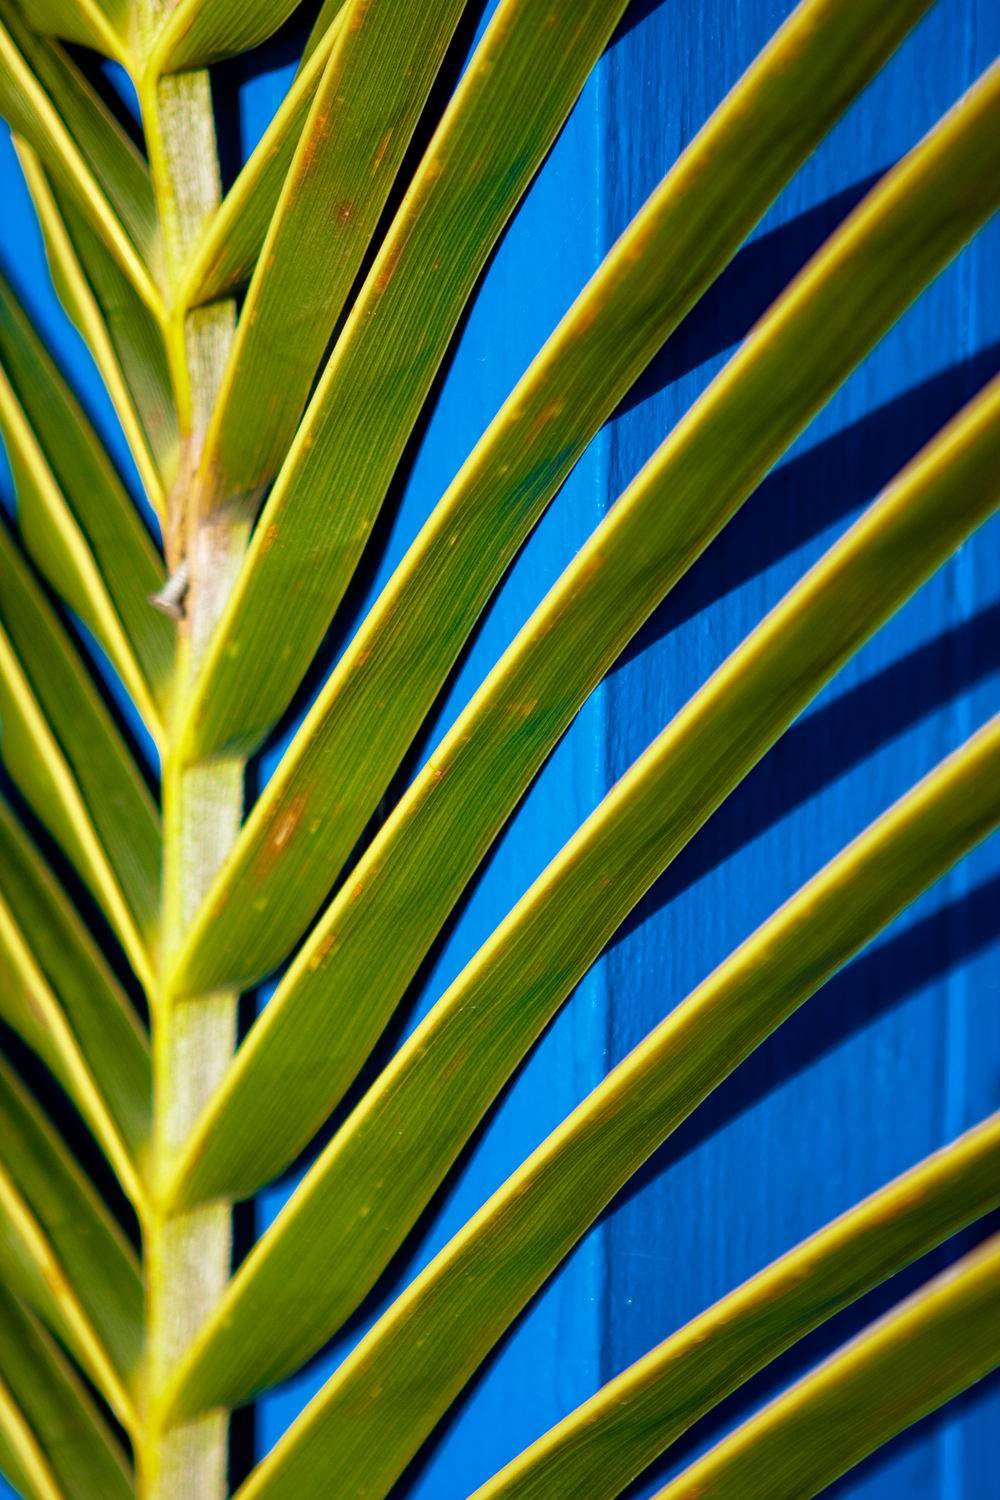 Abstract detail image of green leaves set against a bright blue post.